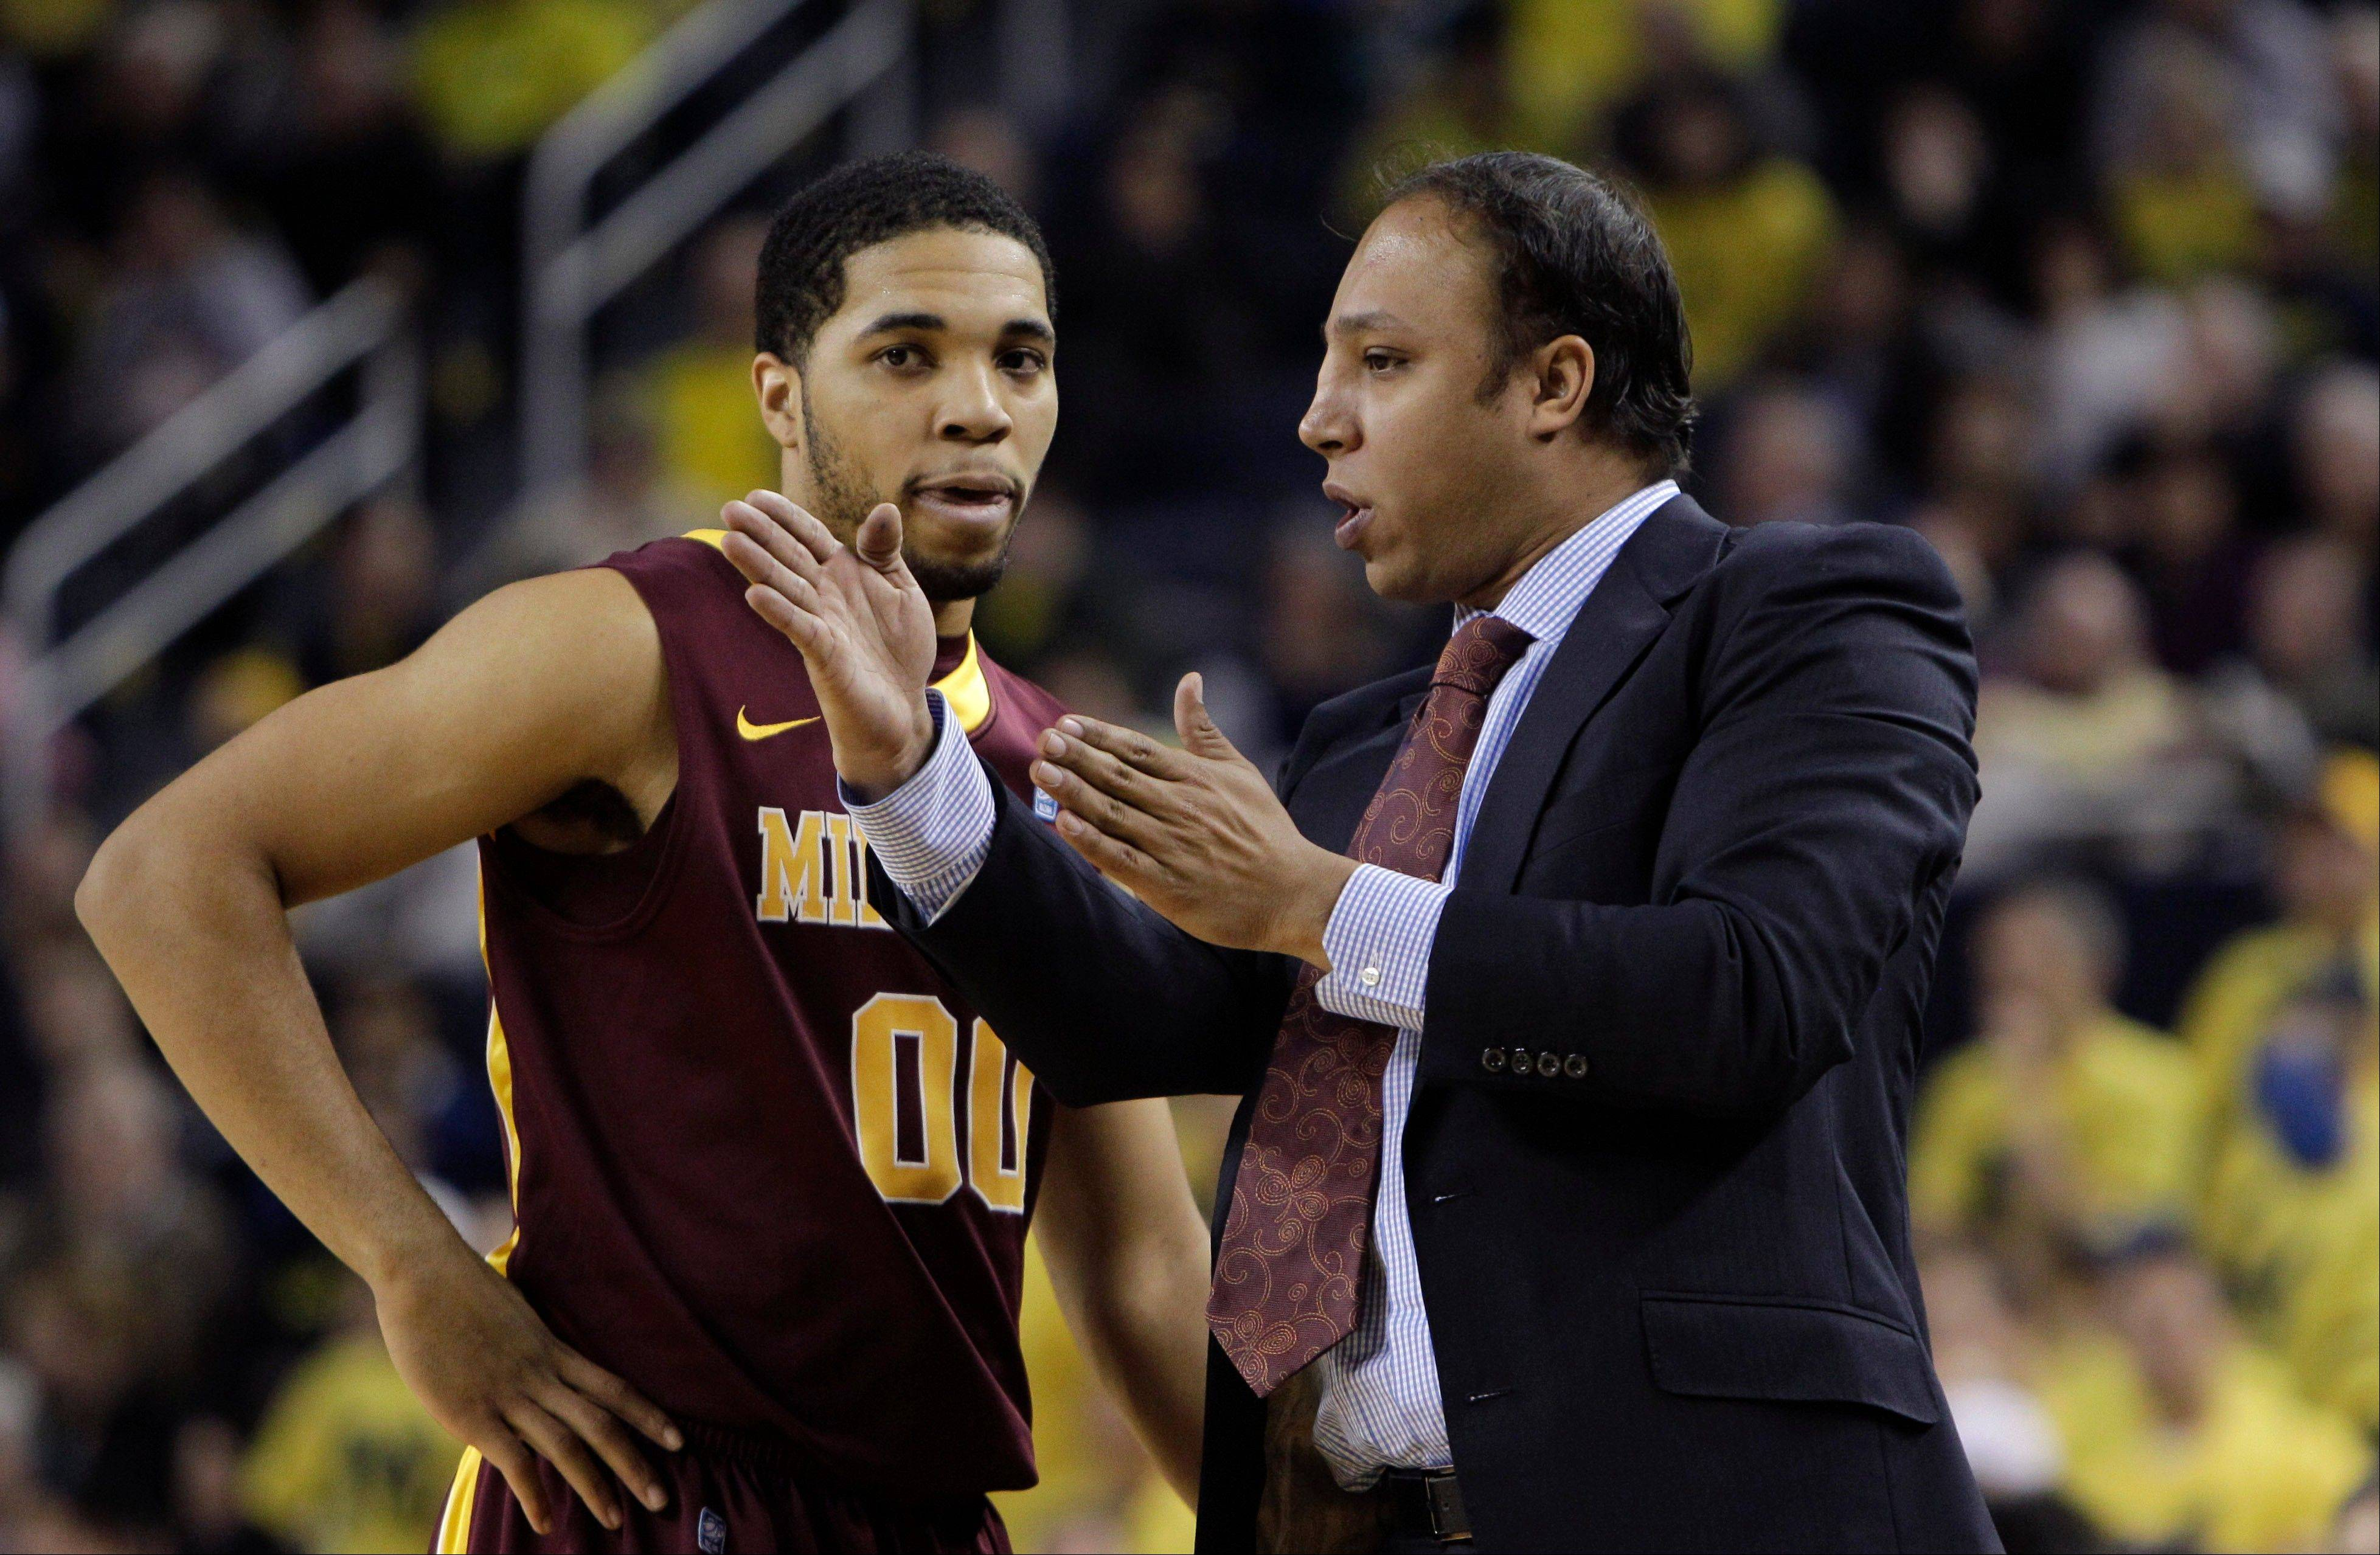 Minnesota assistant coach Saul Smith talks to guard Julian Welch during a game against Michigan last January in Ann Arbor, Mich. Smith is on indefinite leave after a weekend arrest on suspicion of drunken driving.